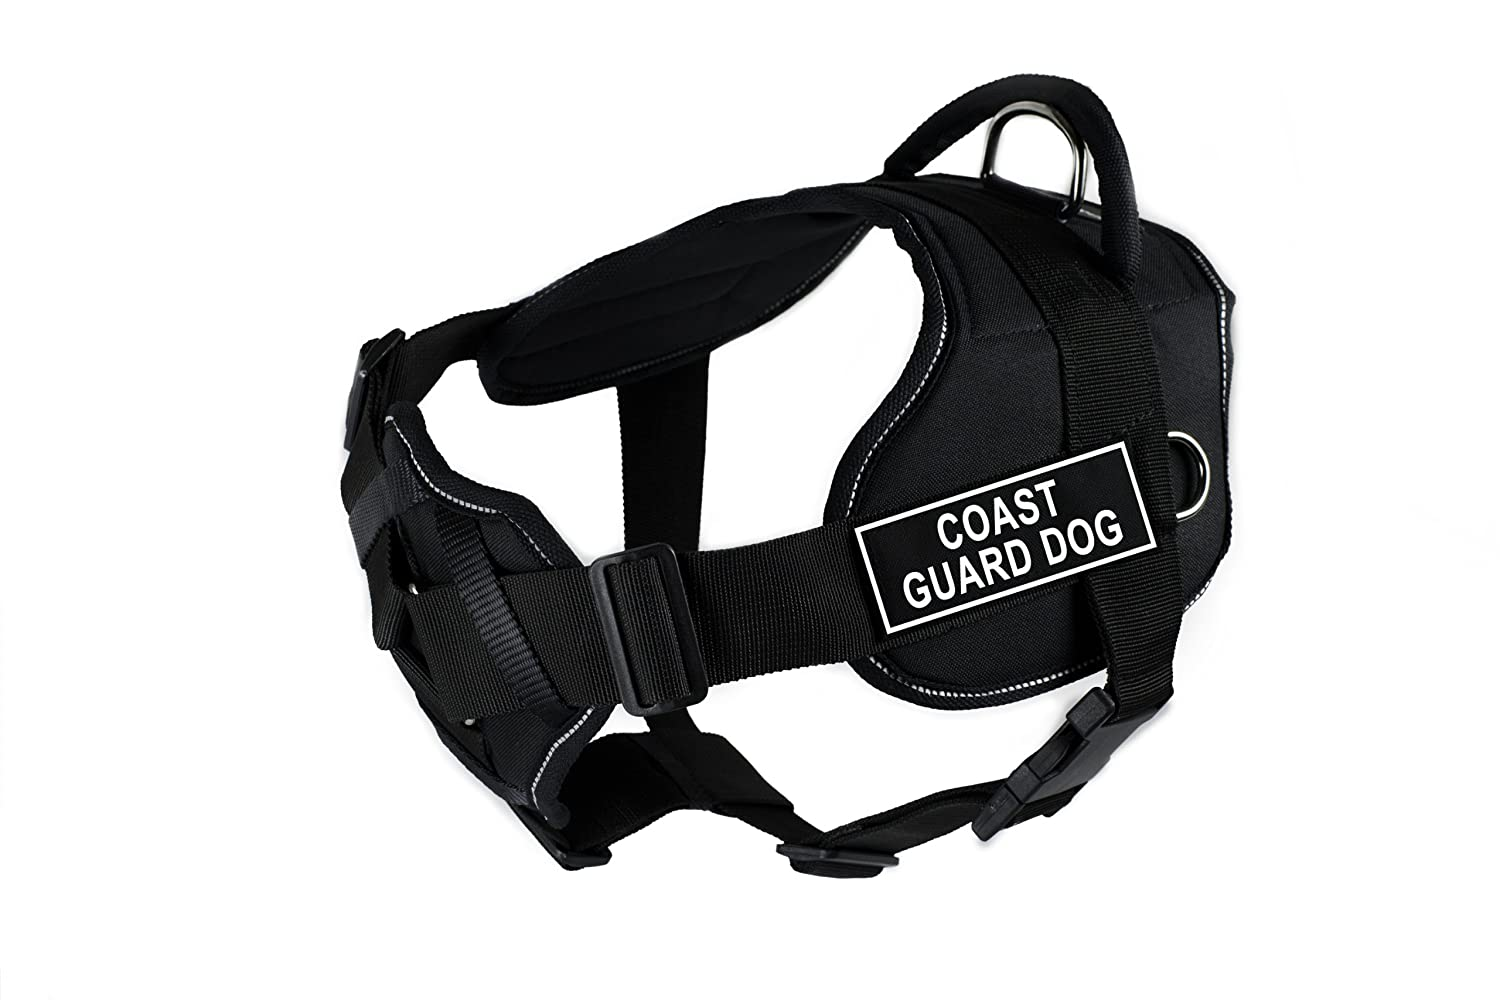 Black with Reflective Trim M Black with Reflective Trim M Dean & Tyler Fun Harness with Padded Chest Piece, Coast Guard Dog, Small, Black with Reflective Trim